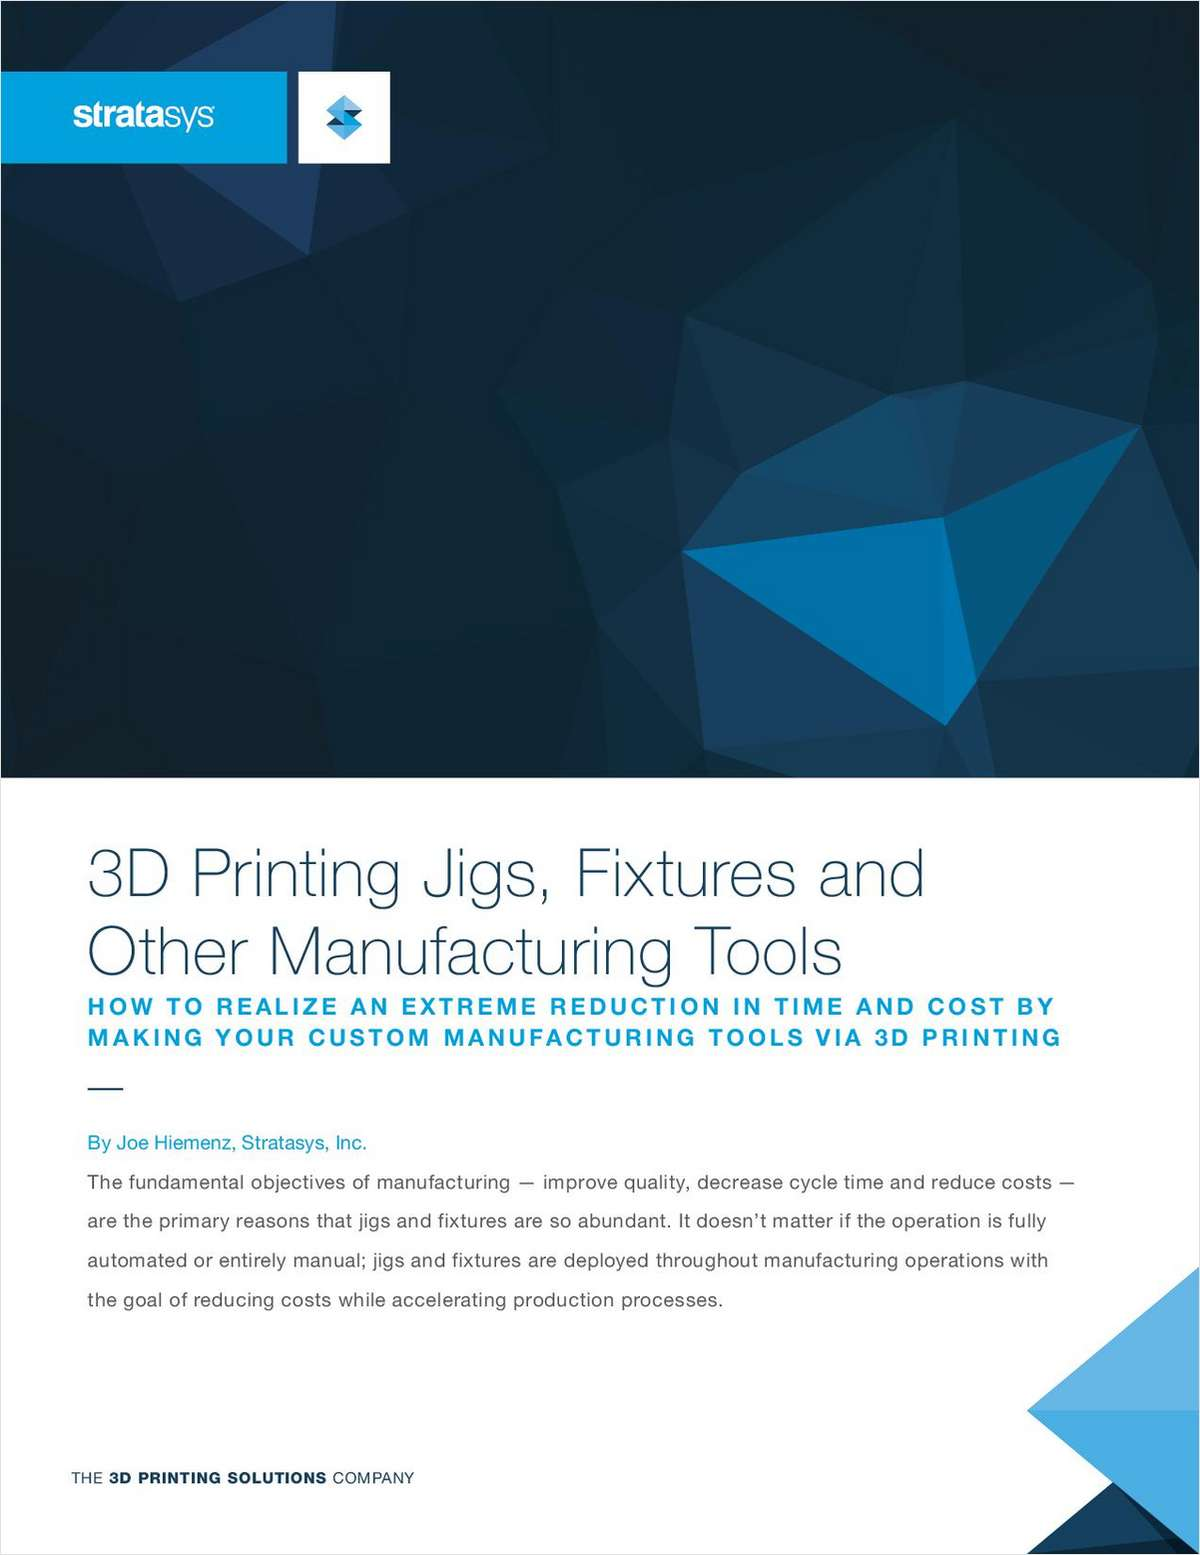 3D Printing Jigs, Fixtures and Other Manufacturing Tools